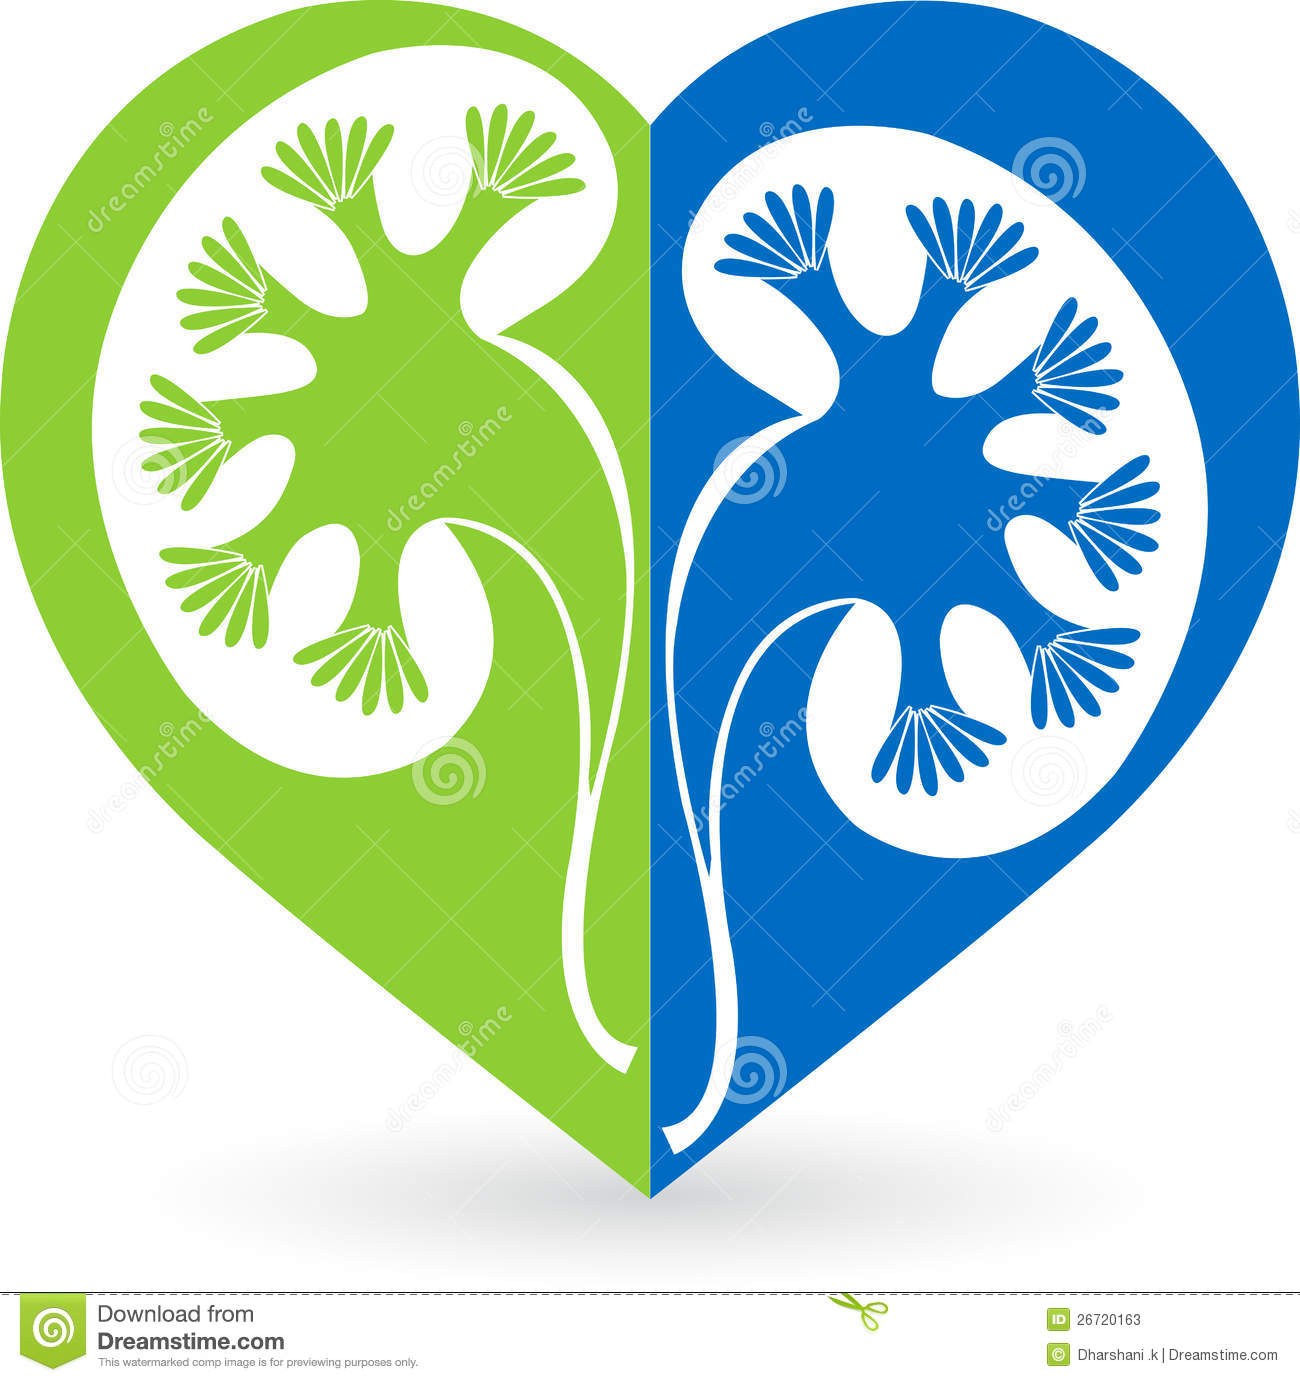 Illustration art of a love shape kidney logo with isolated background.